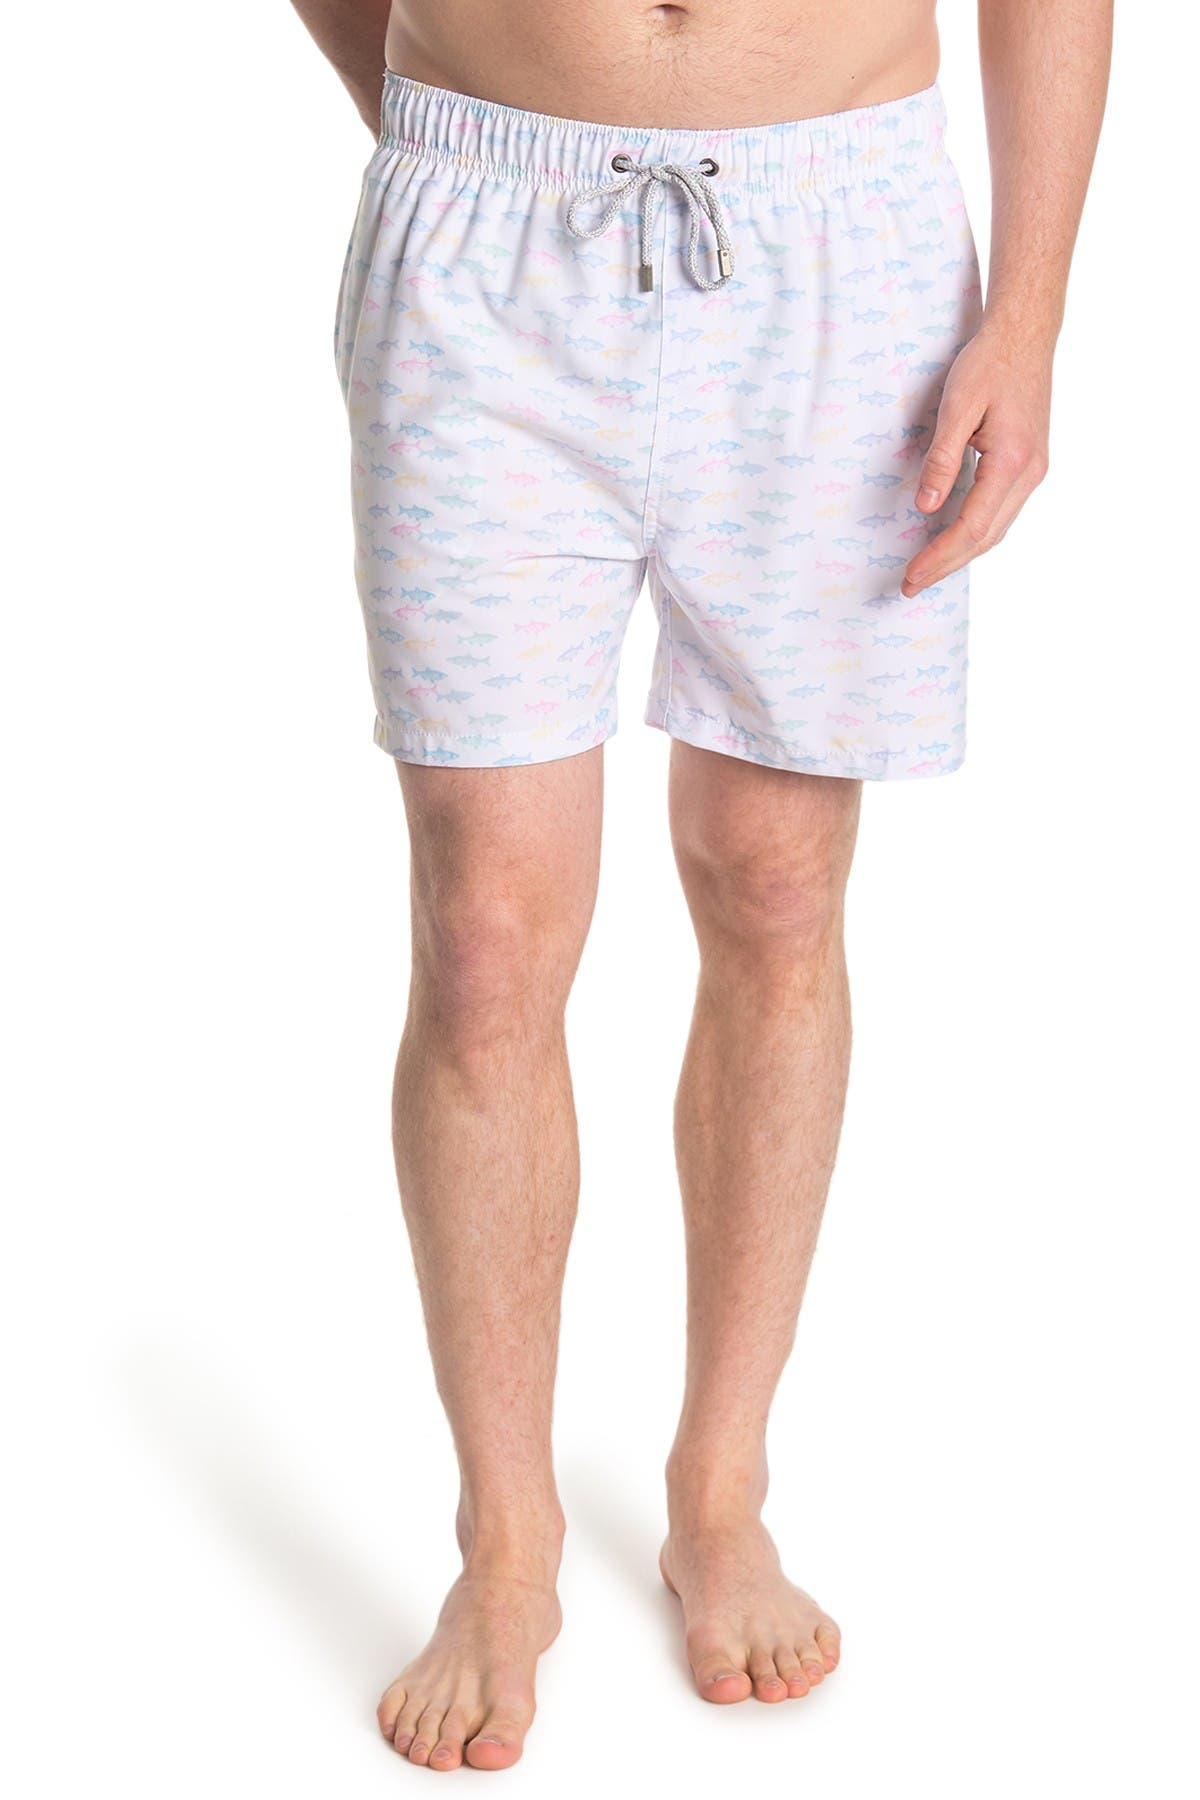 Image of Vintage Summer Fish Print Swimming Trunks